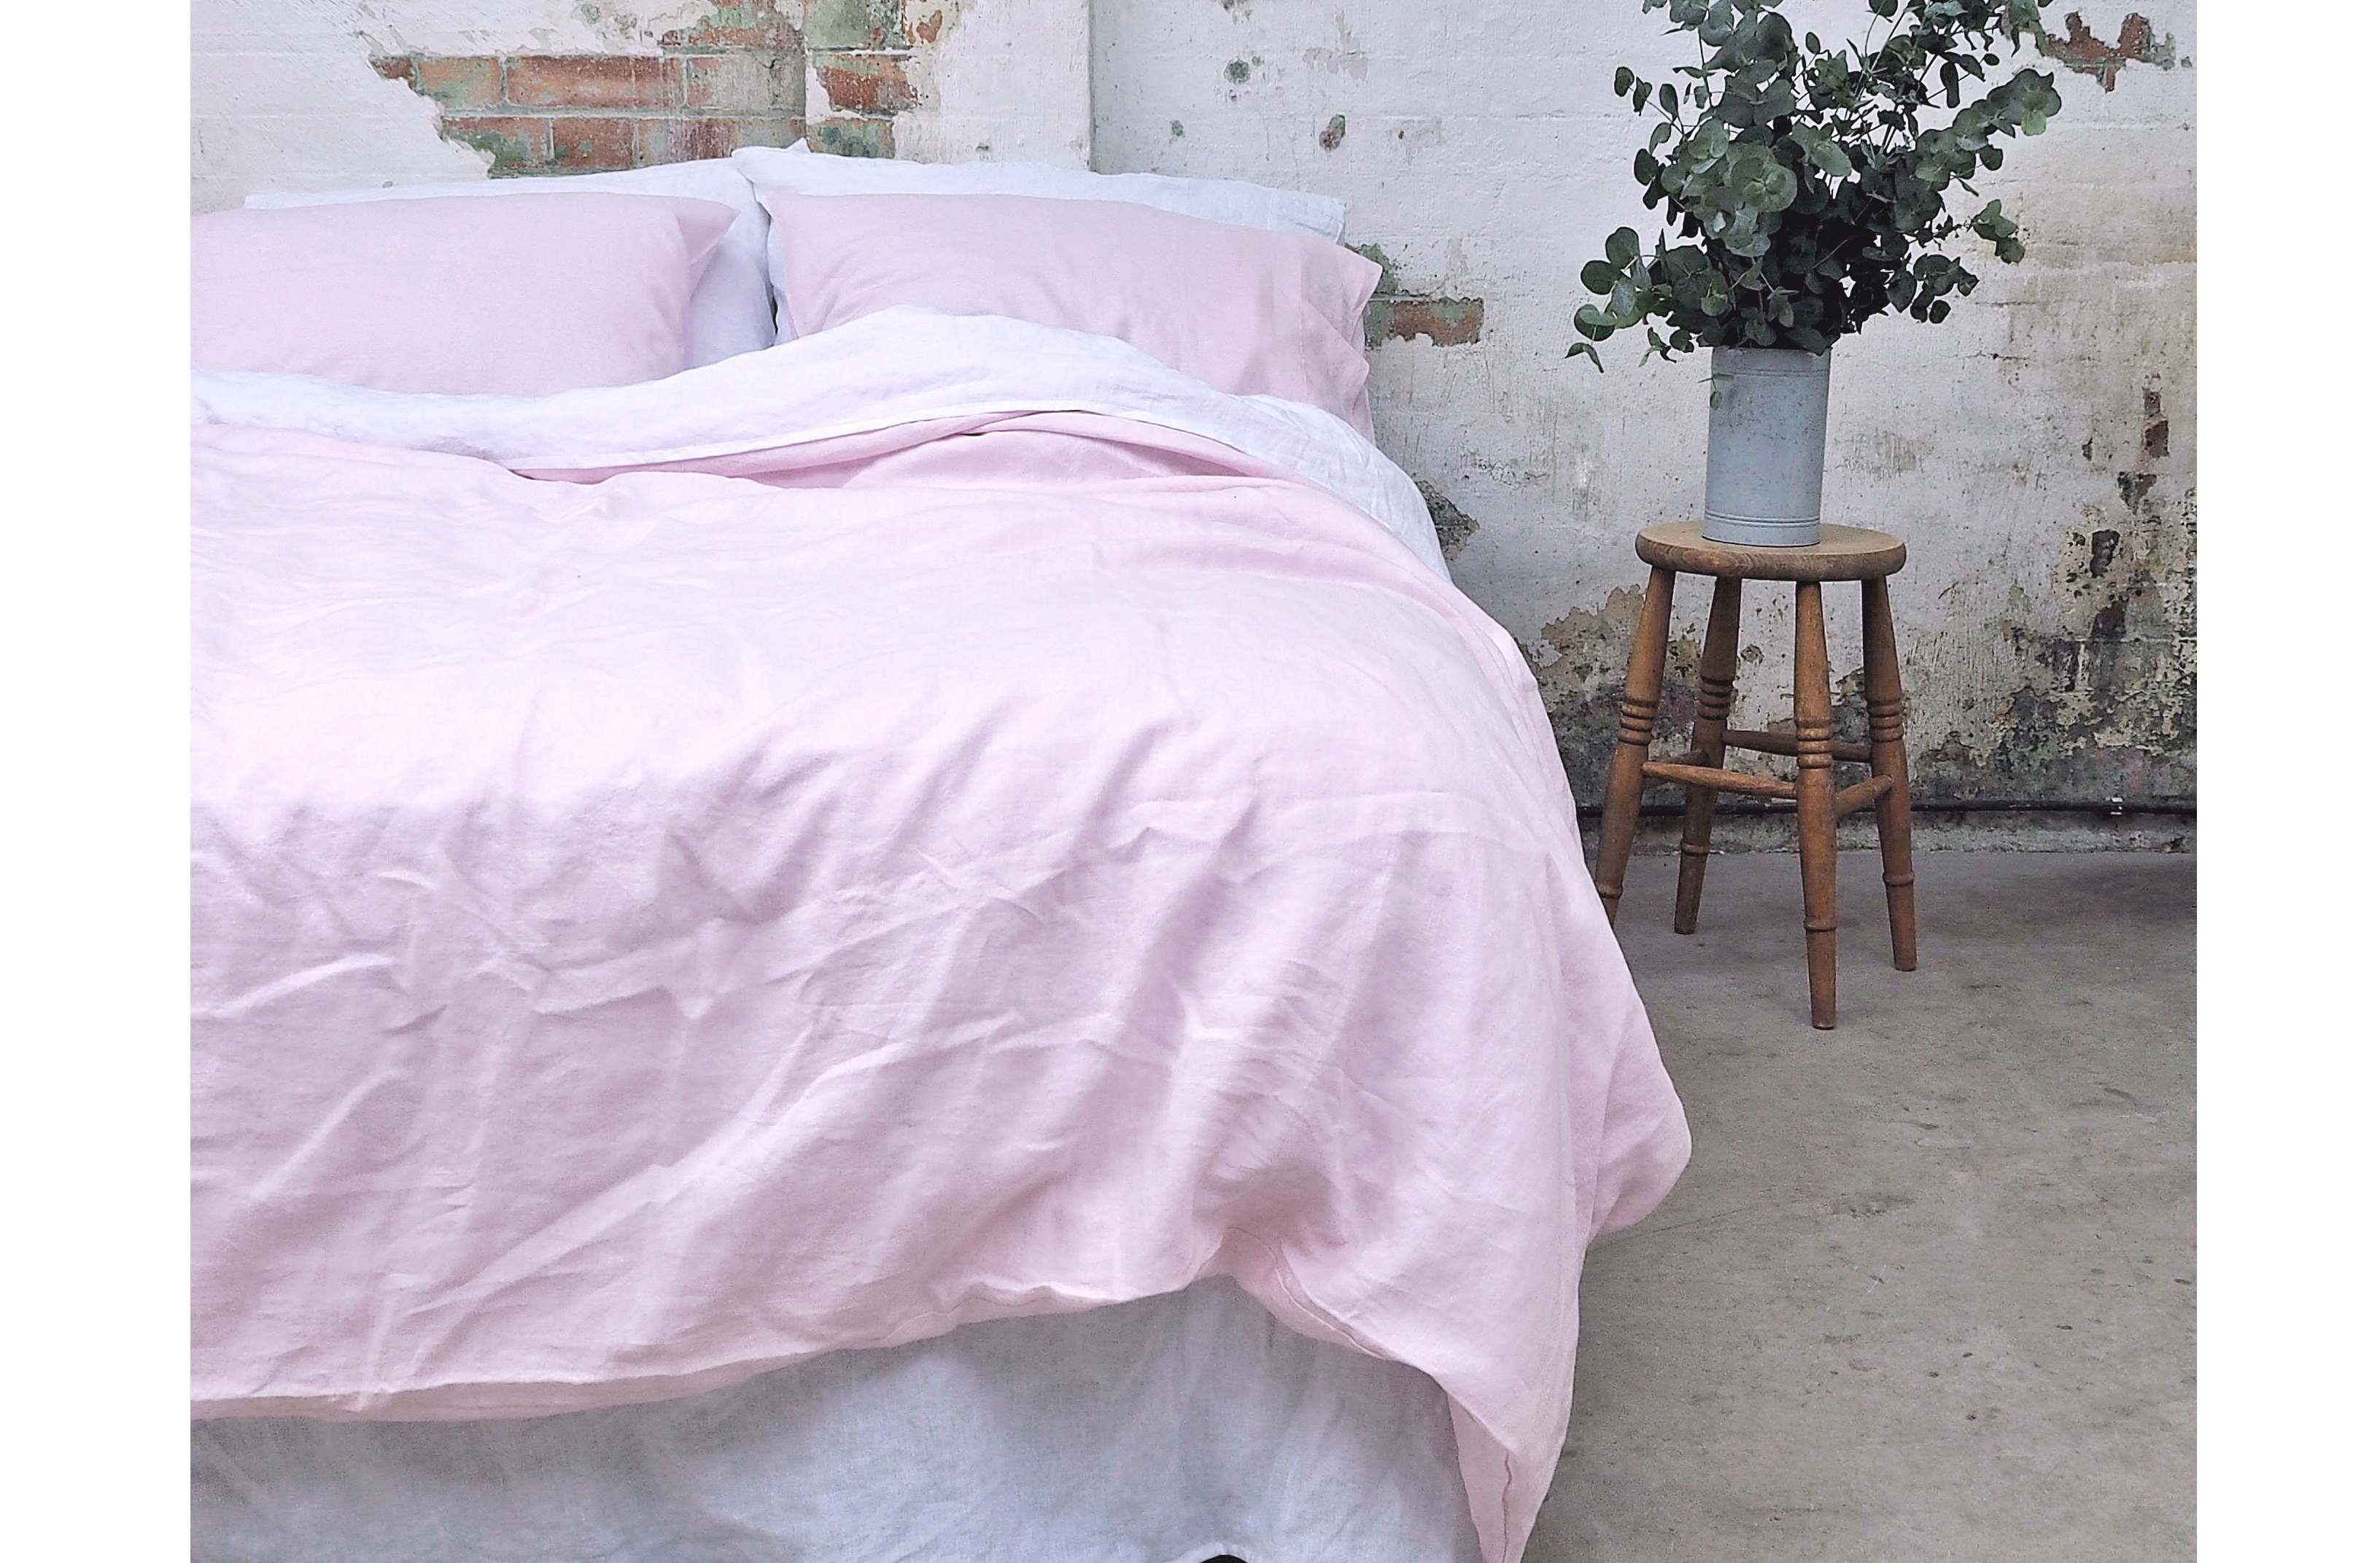 It's National Bed Month!